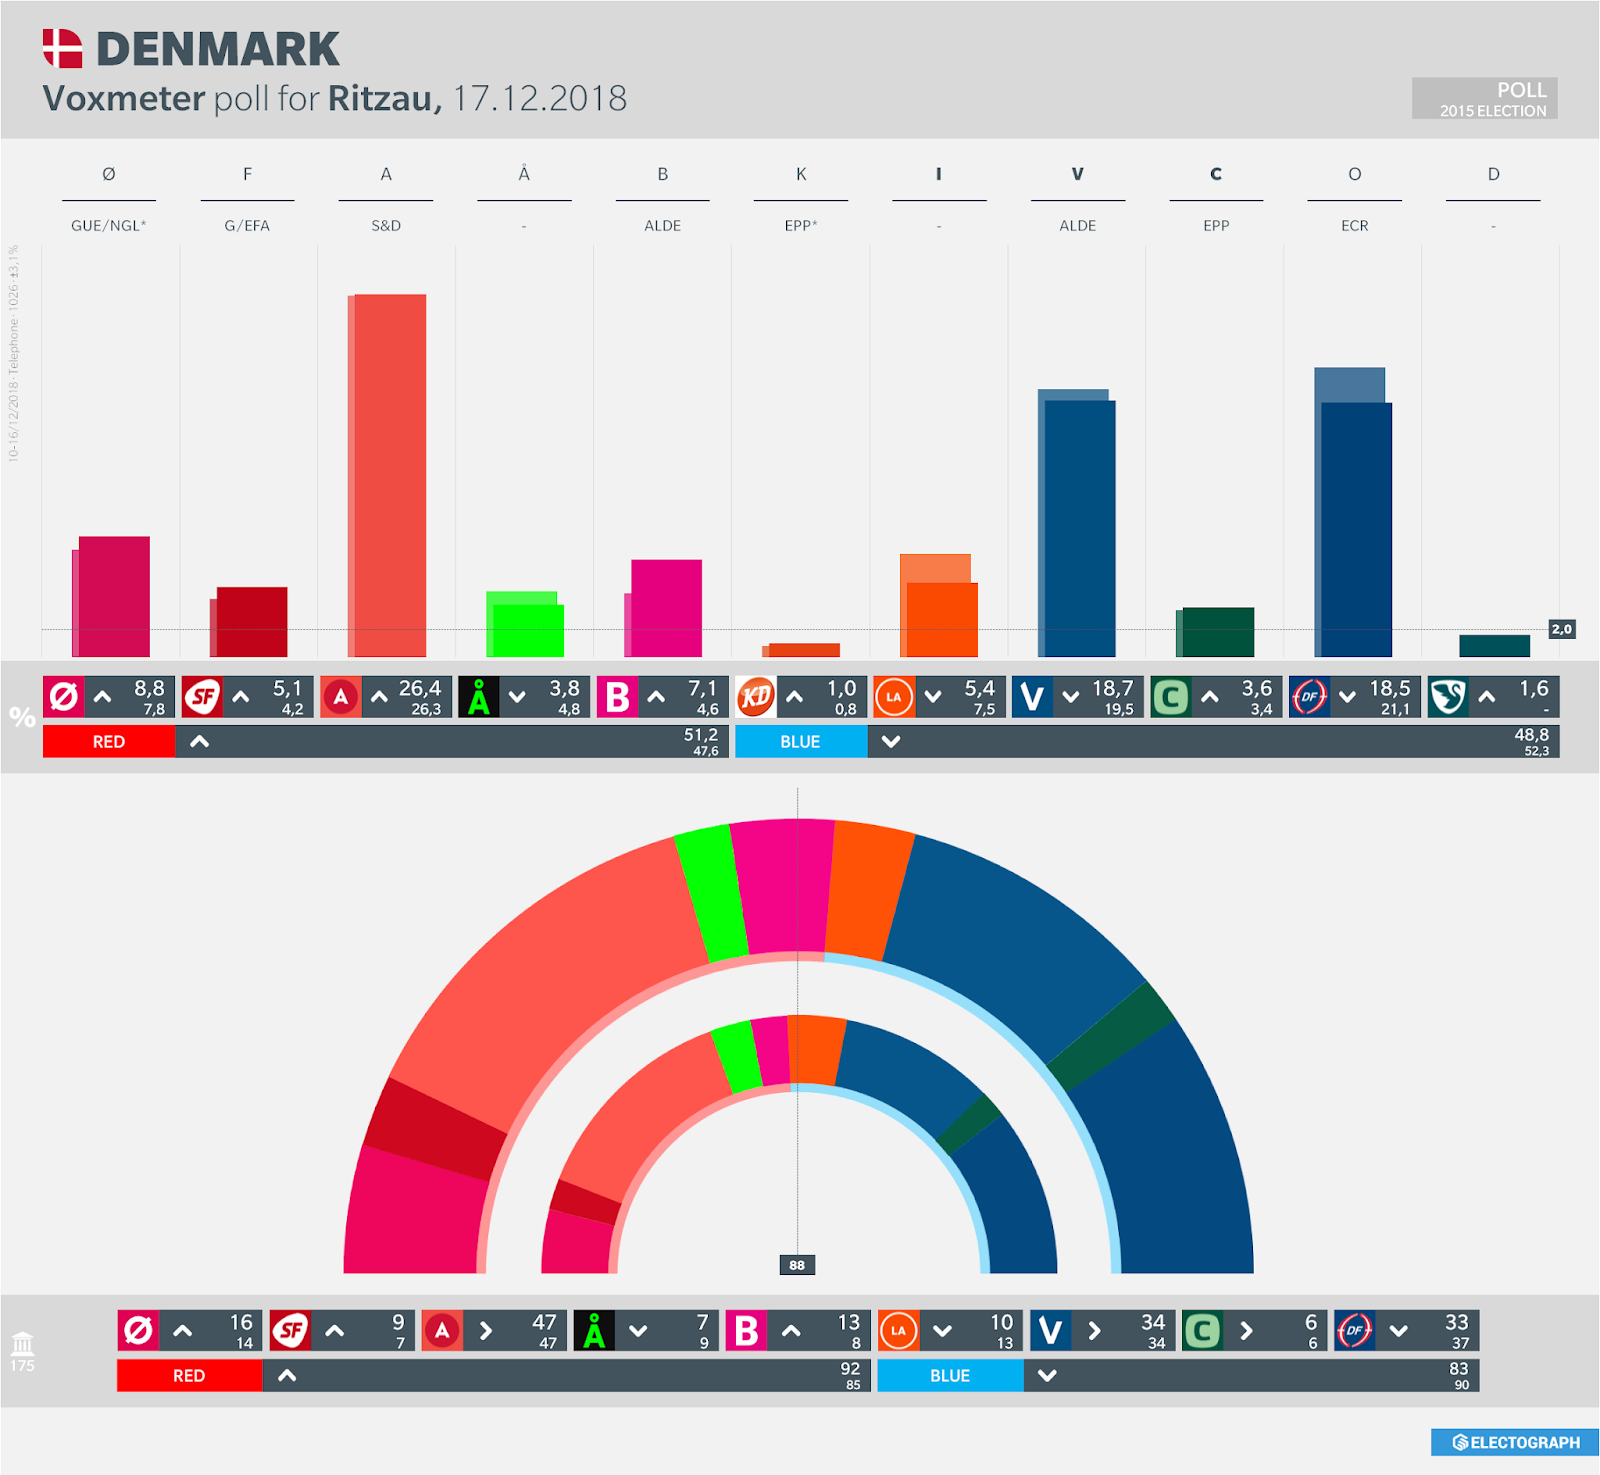 DENMARK: Voxmeter poll chart for Ritzau, 17 December 2018